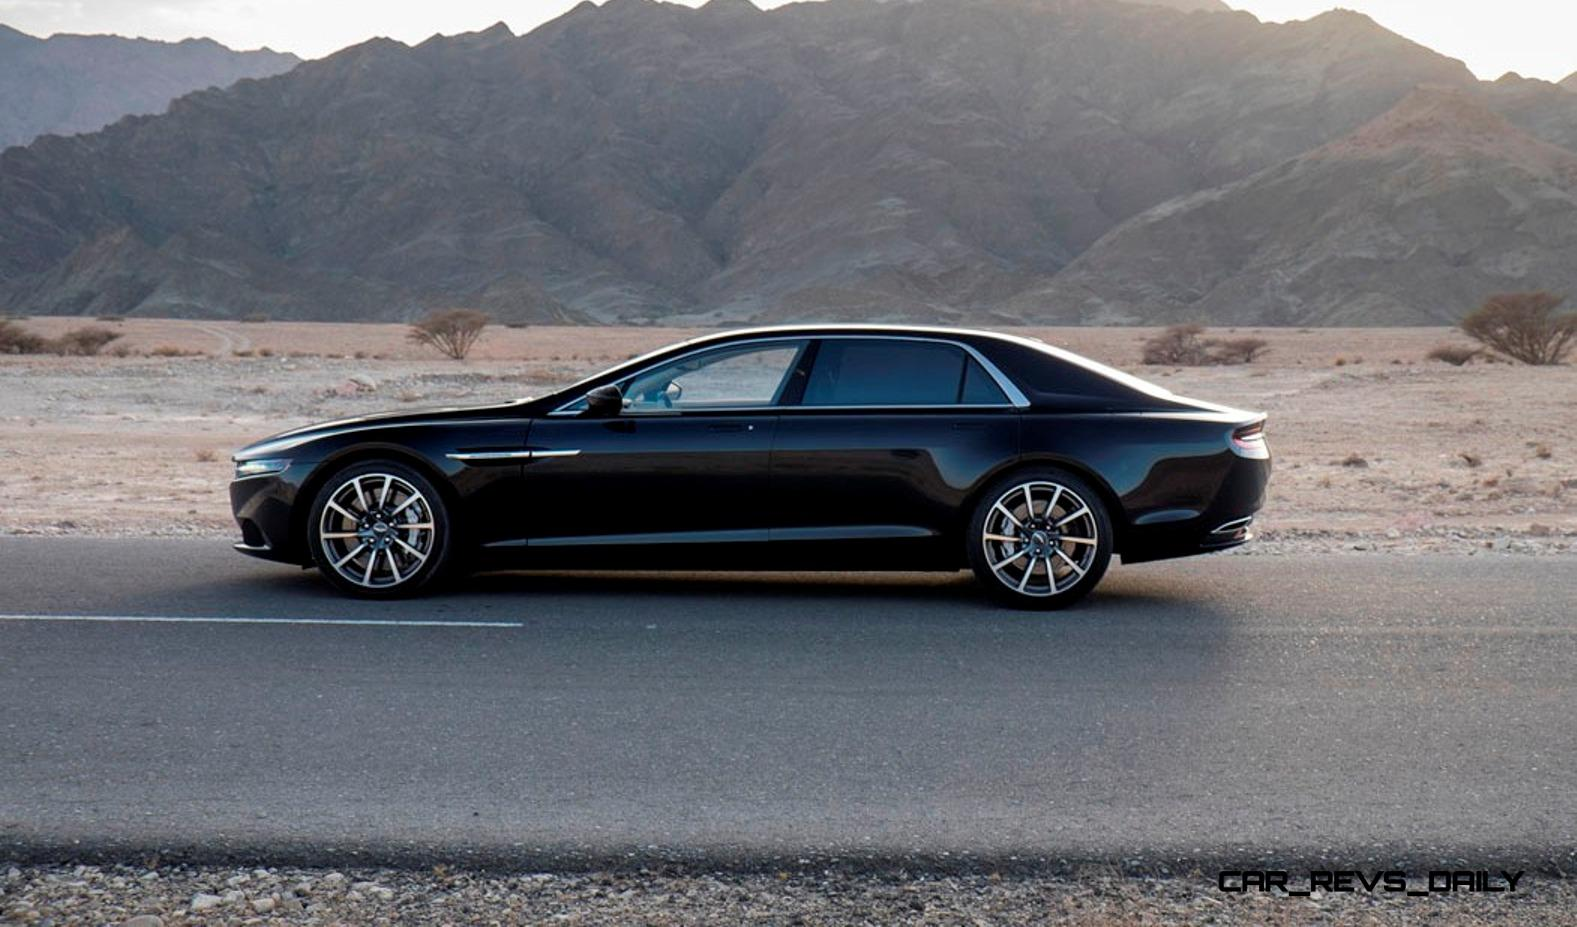 2015 Aston Martin Lagonda In 27 New Hot Weather Testing Photos